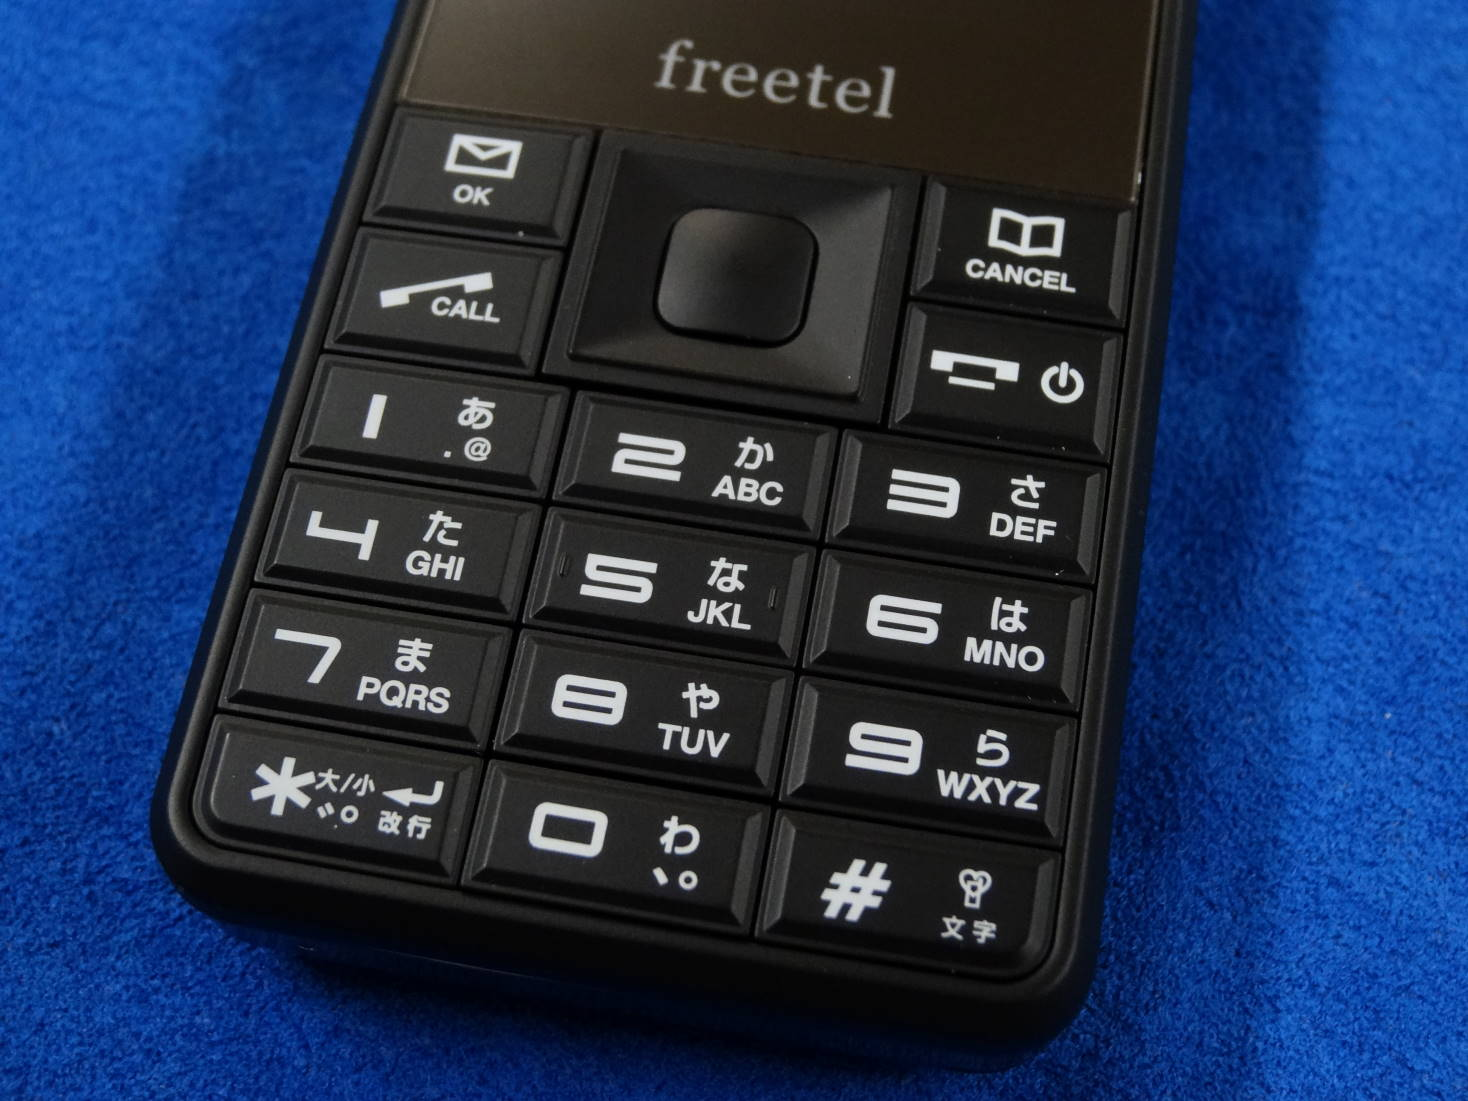 FREETEL Simple キー部分